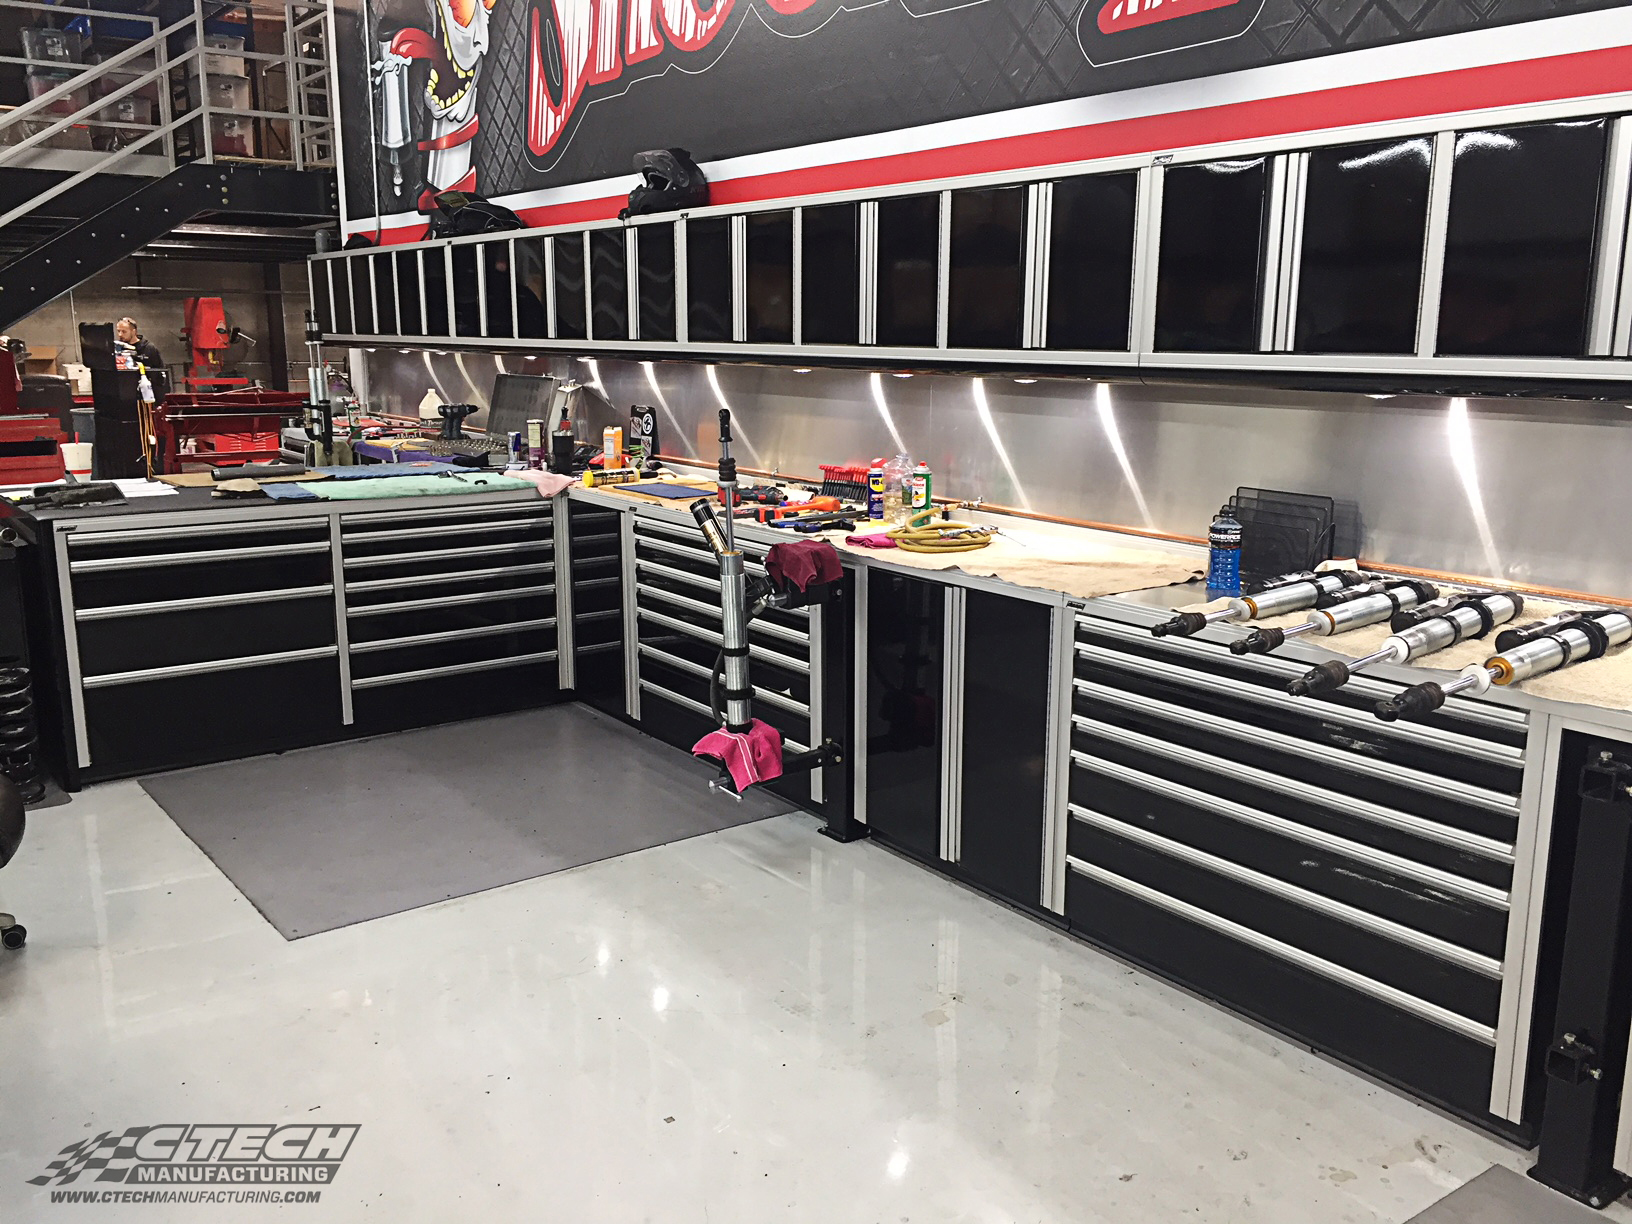 The team at Shock Therapy wanted only the best shop cabinet setup, not only for their technicians but also for their customers. By installing a custom CTECH cabinet system, they've given their shop a massive facelift, and improved efficiency in the process. BOM 32129